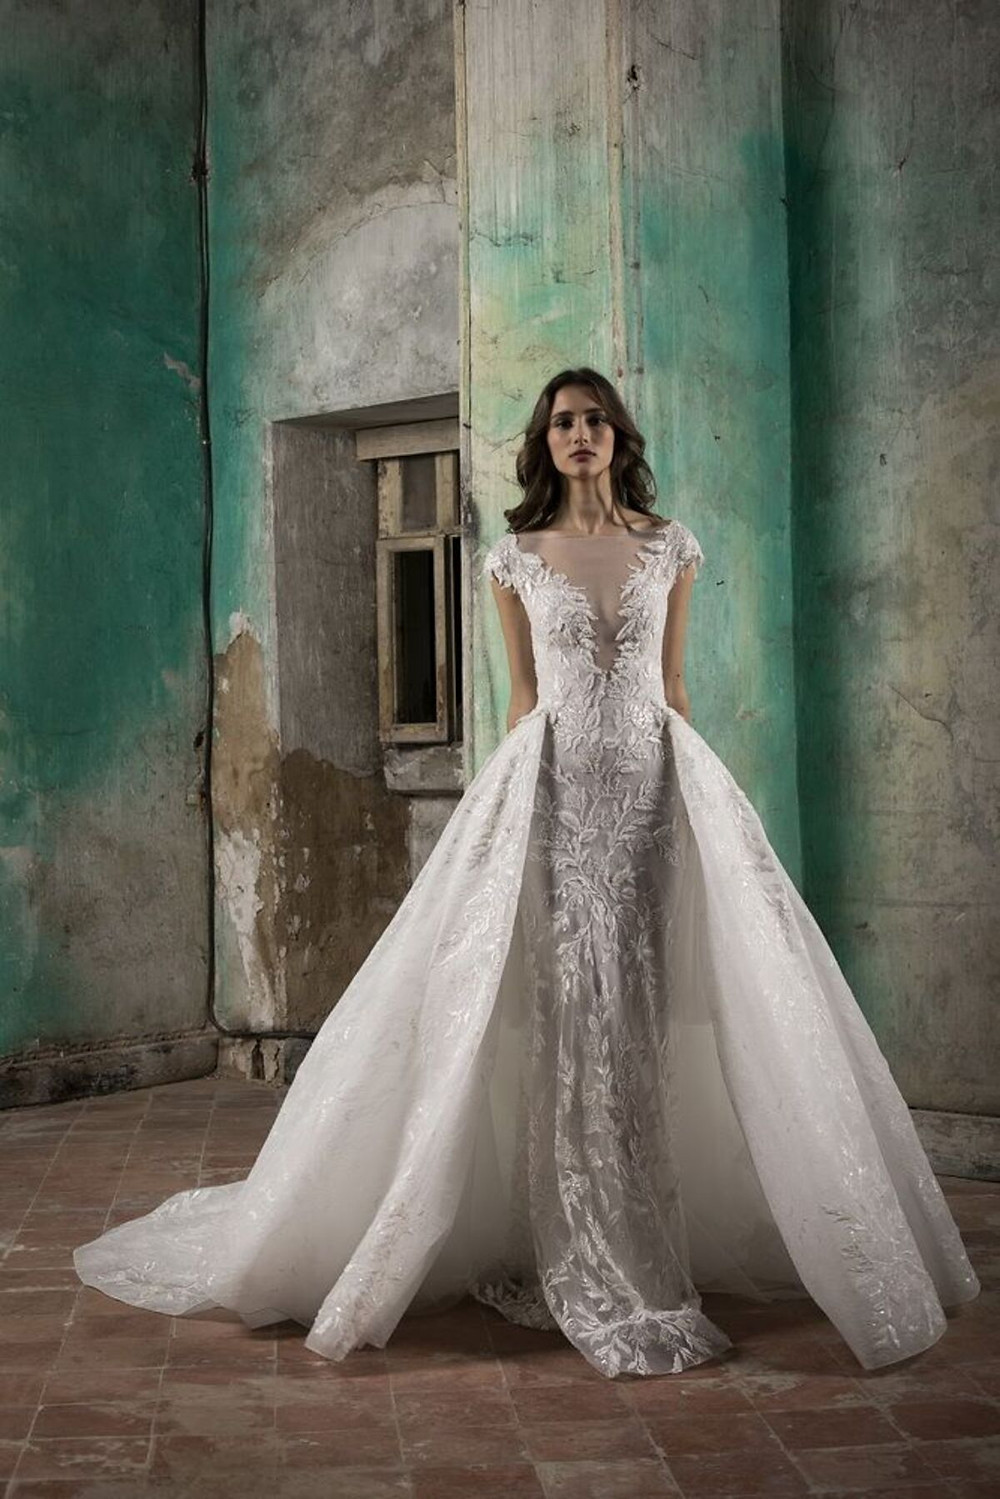 A straight cut lace wedding dress with crystal embroideries featuring a detachable skirt